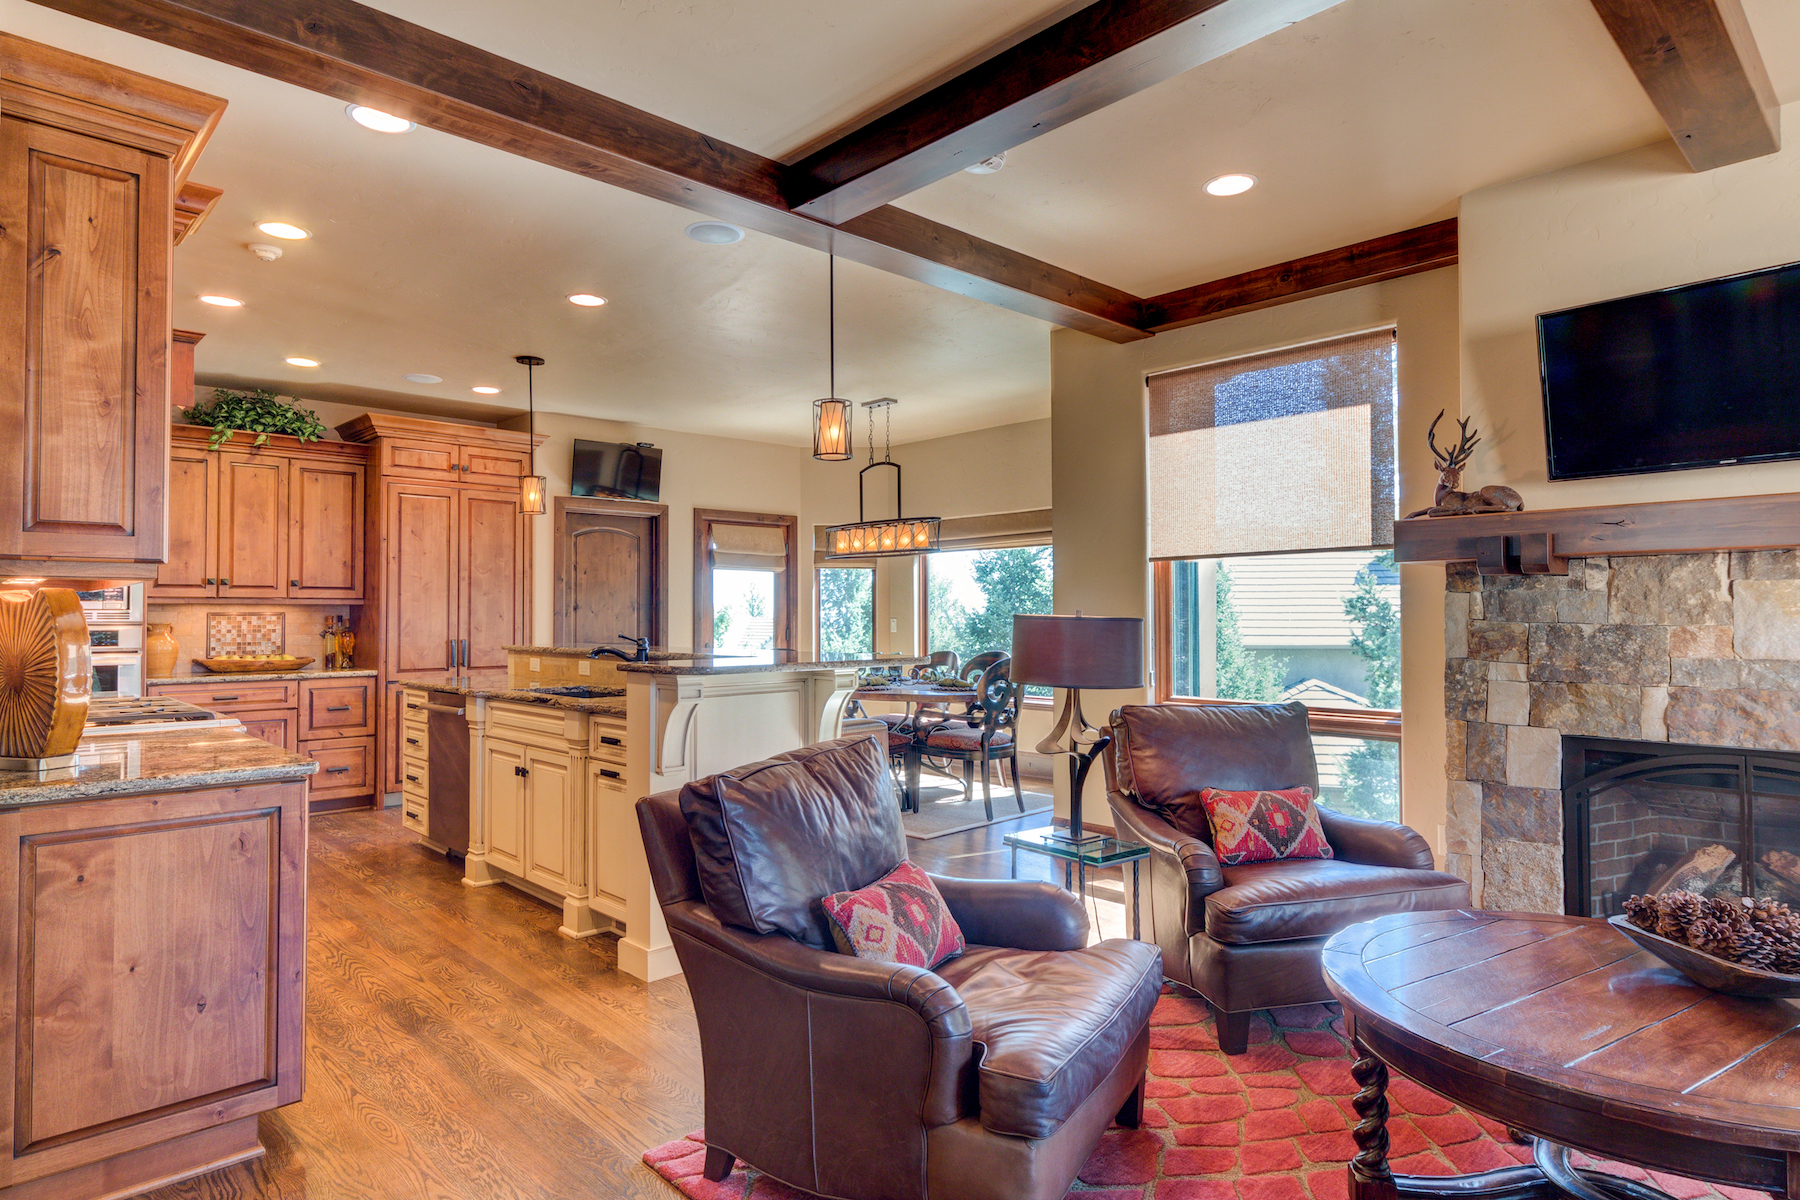 13 - Family Room Opens to Kitchen on the Left.jpg